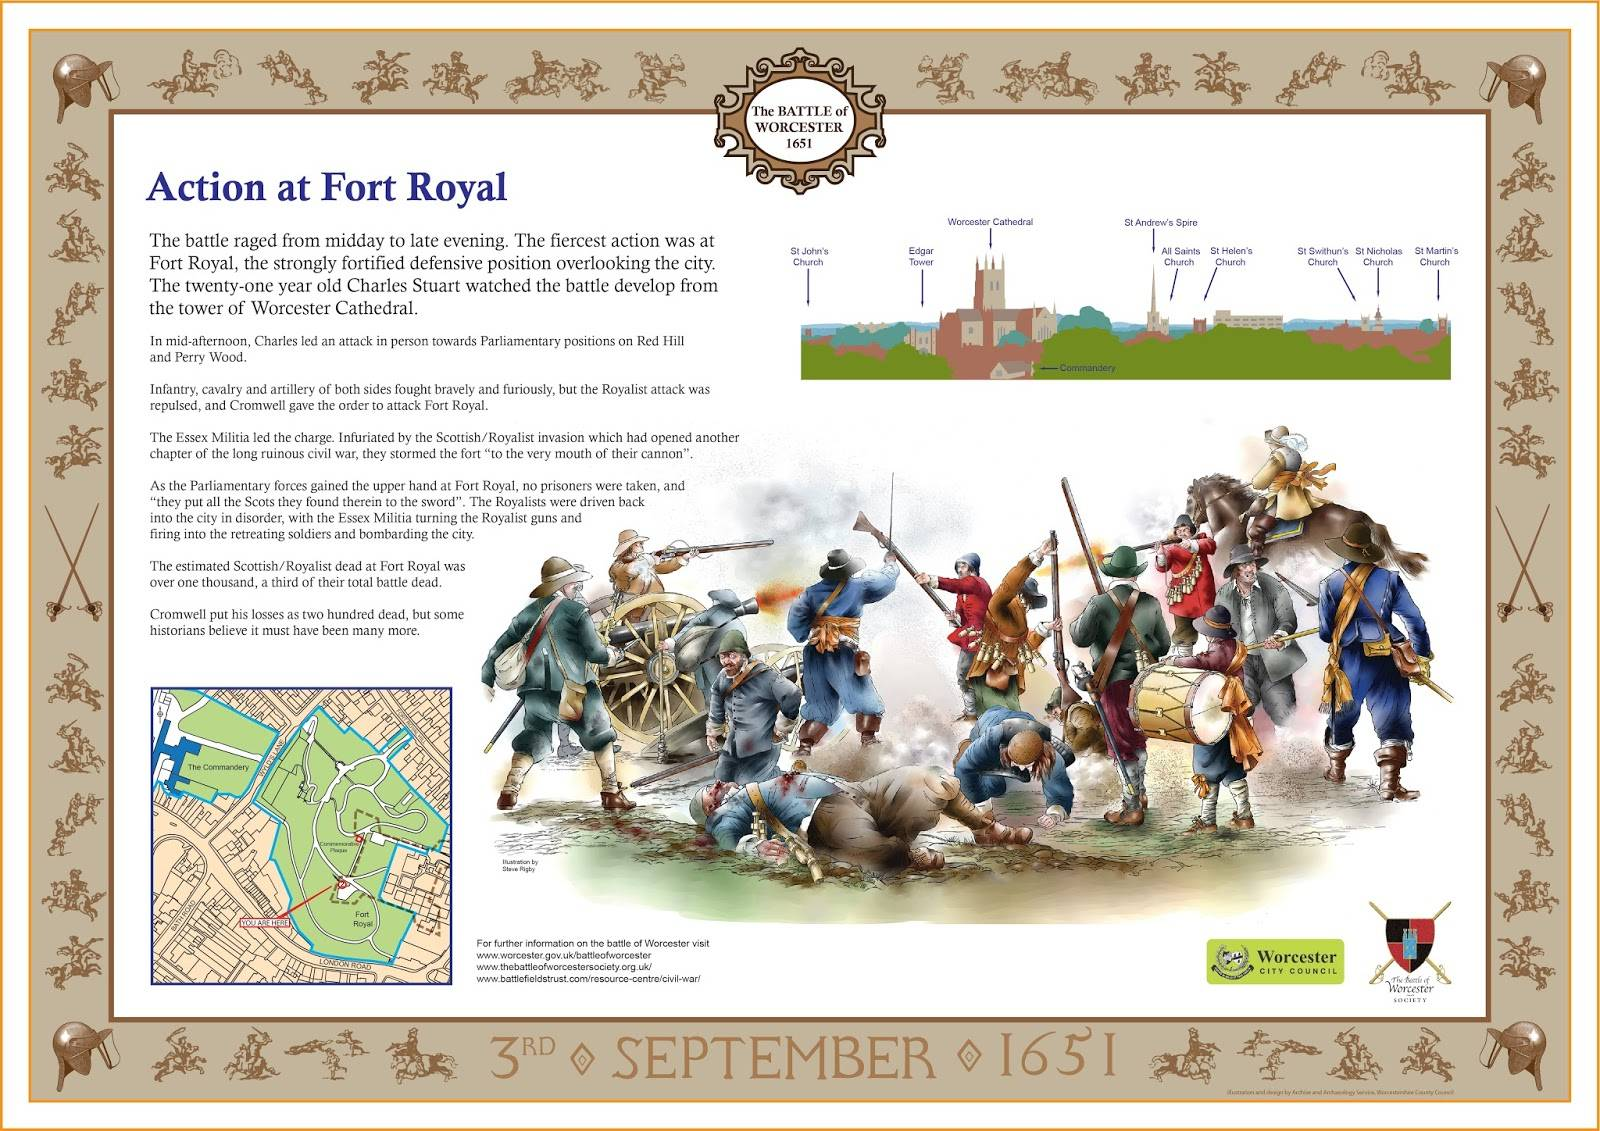 fort royal interpretation panel